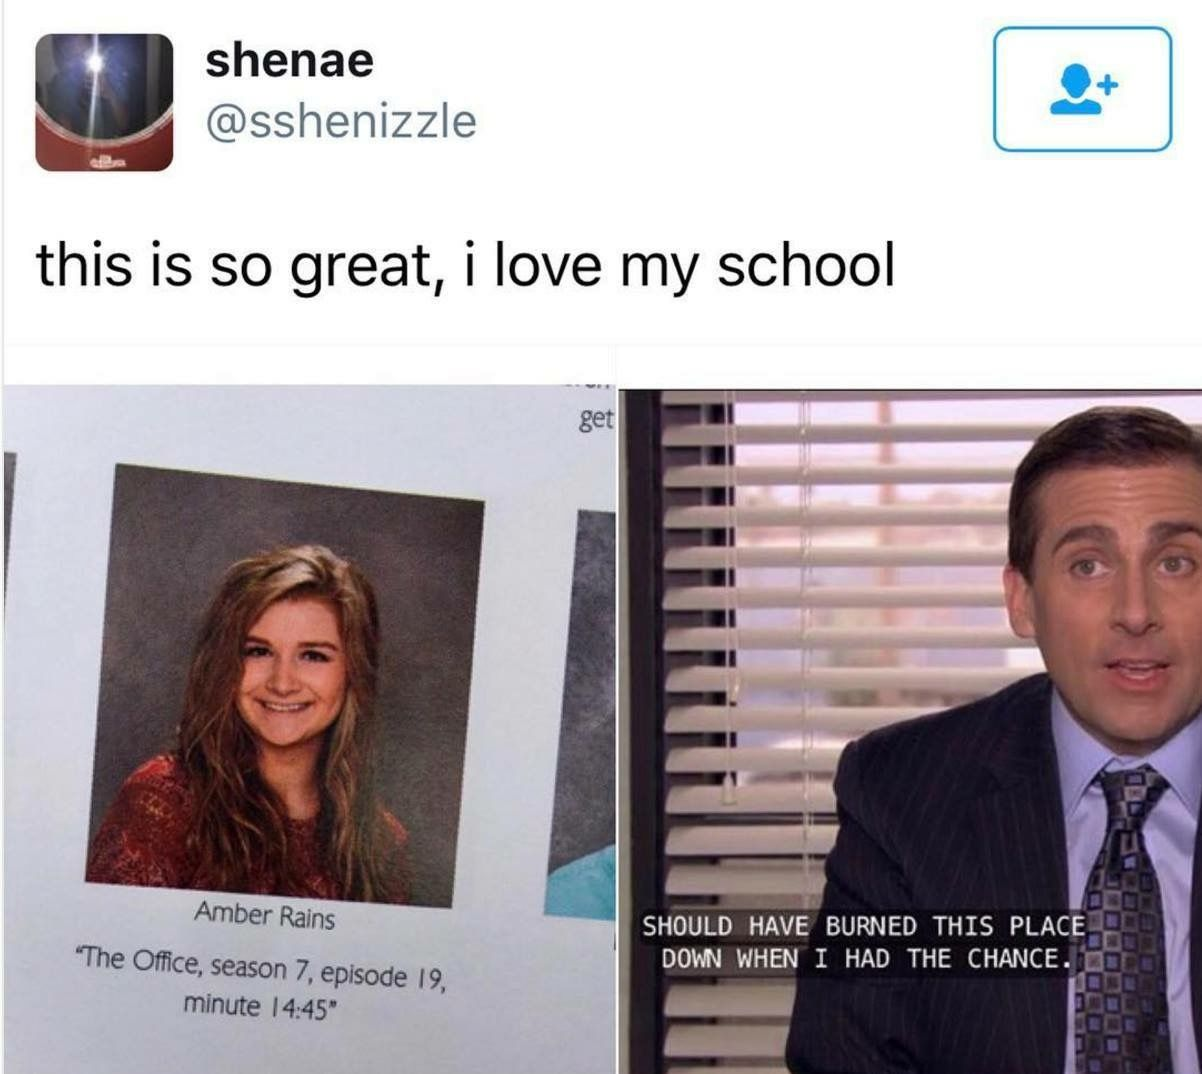 Pin By Mari Nette On Funny Senior Quotes Funny Funny Yearbook Quotes Funny Yearbook